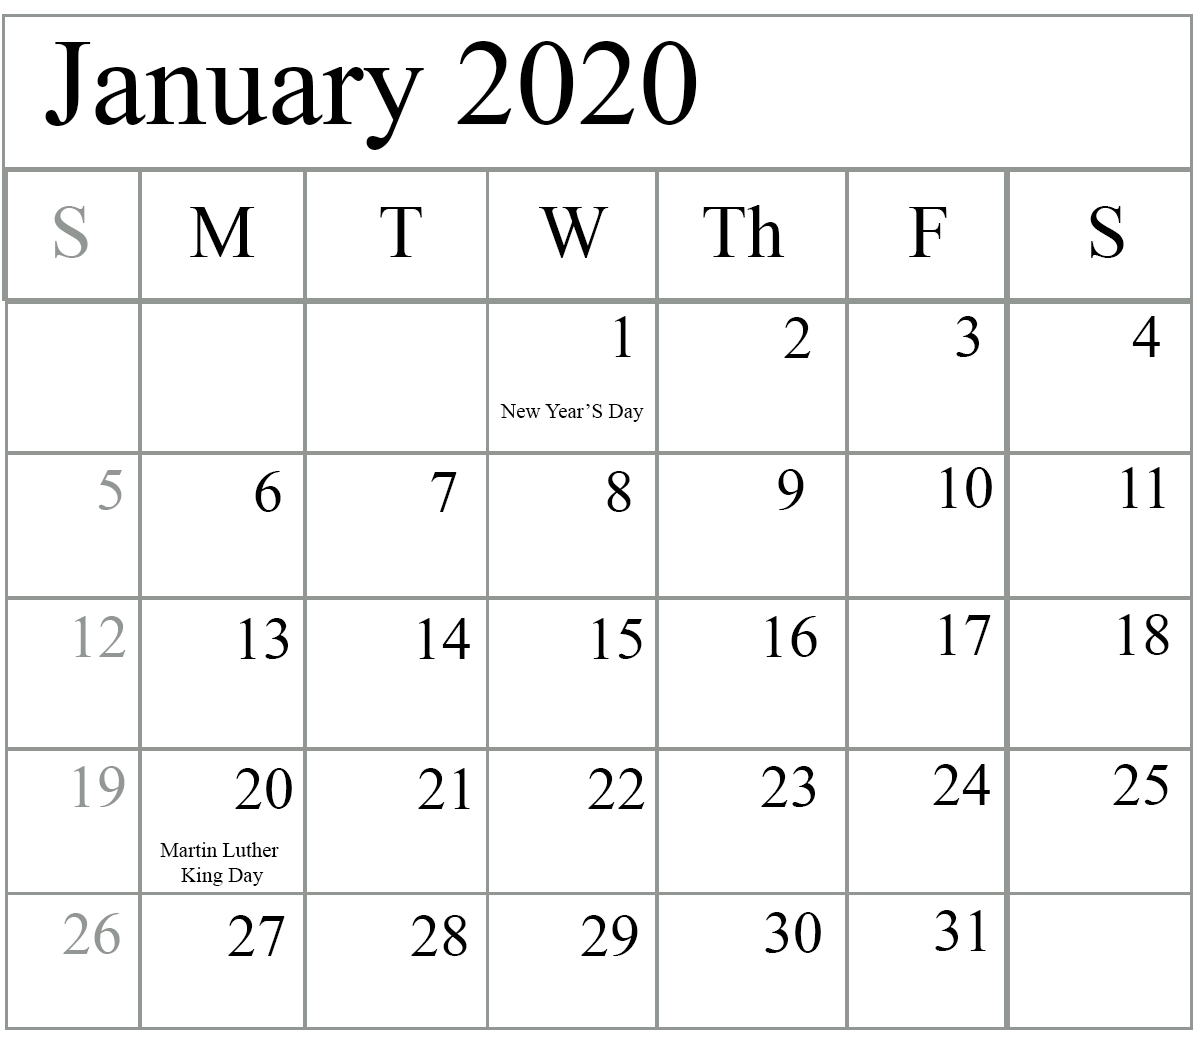 Calendar For January 2020 Layout